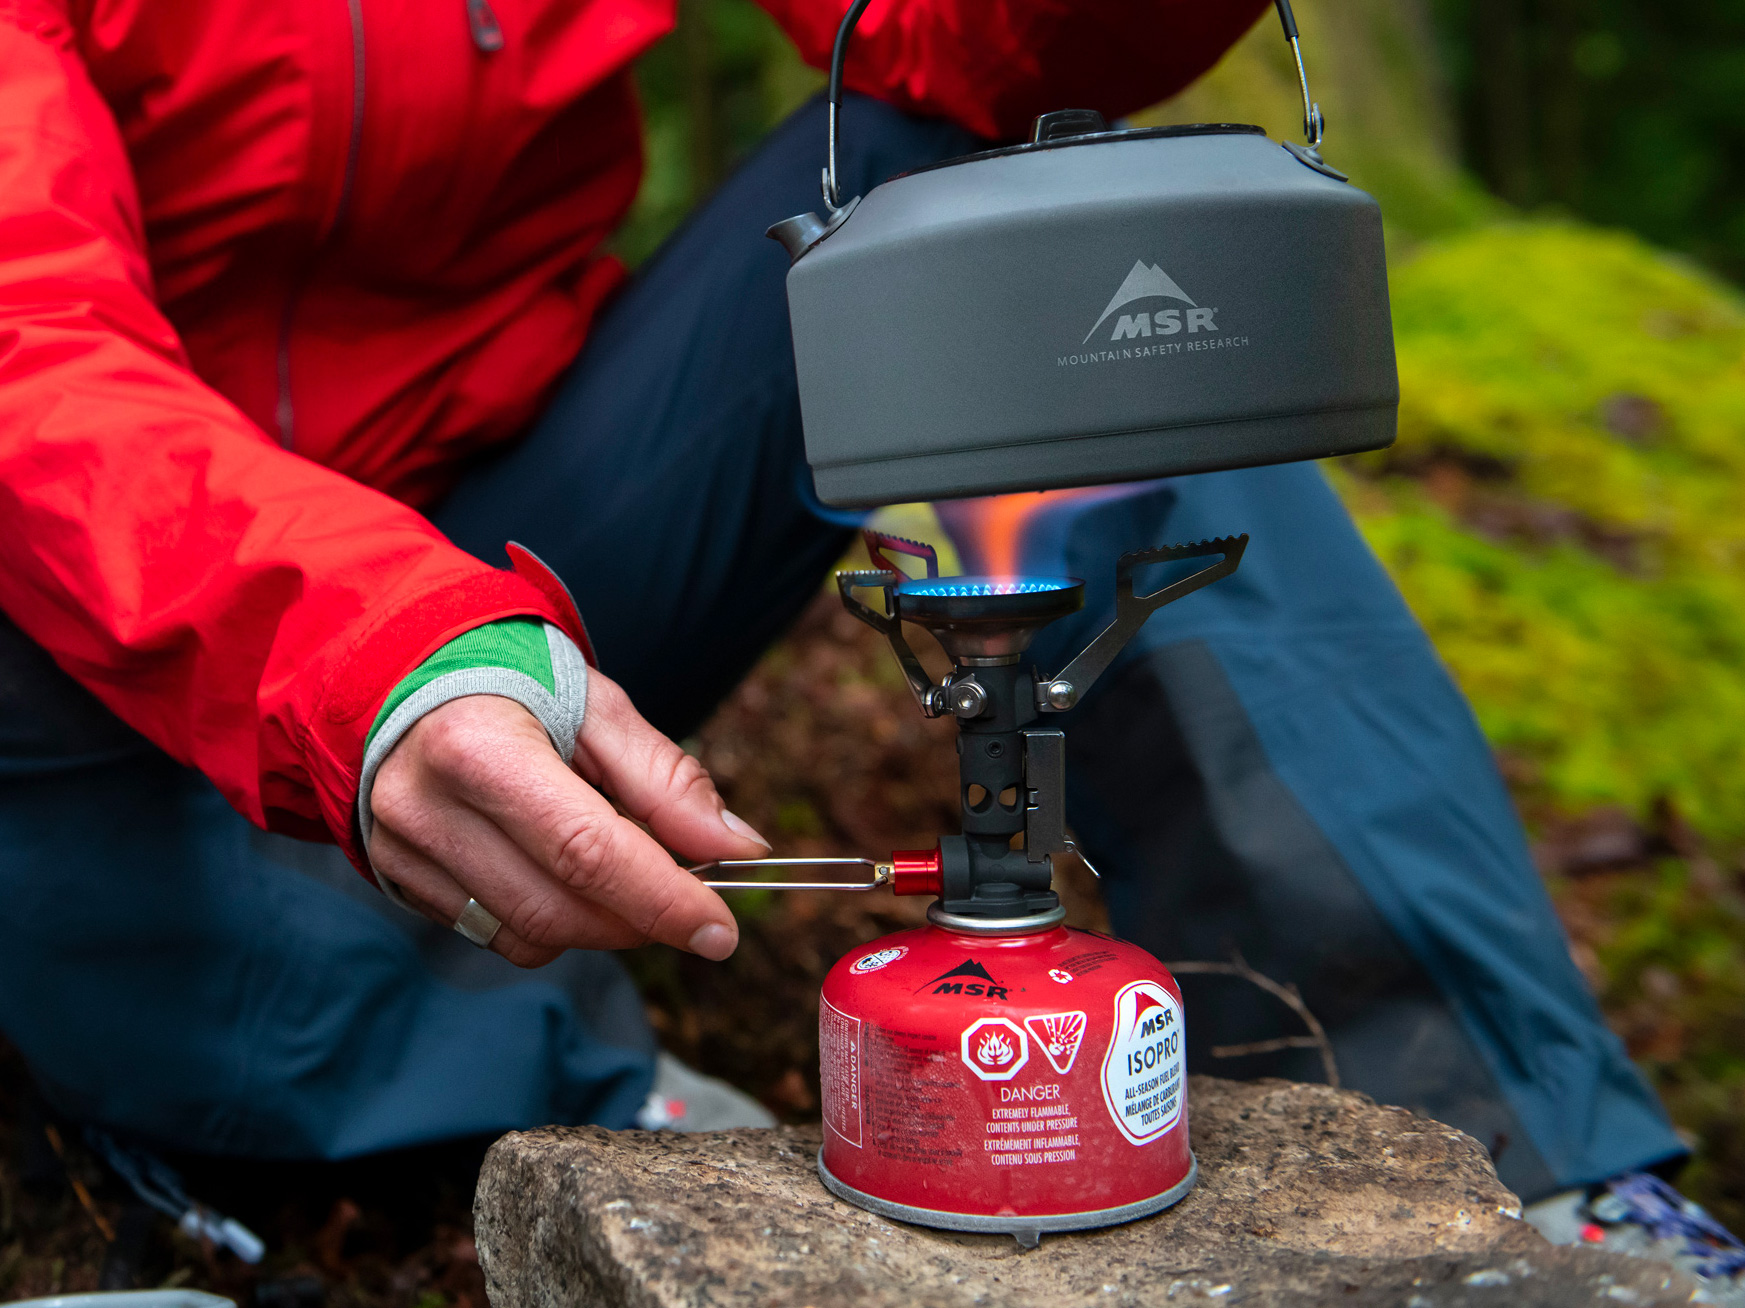 MSR Upgrades Their Lightest Camp Stove at werd.com